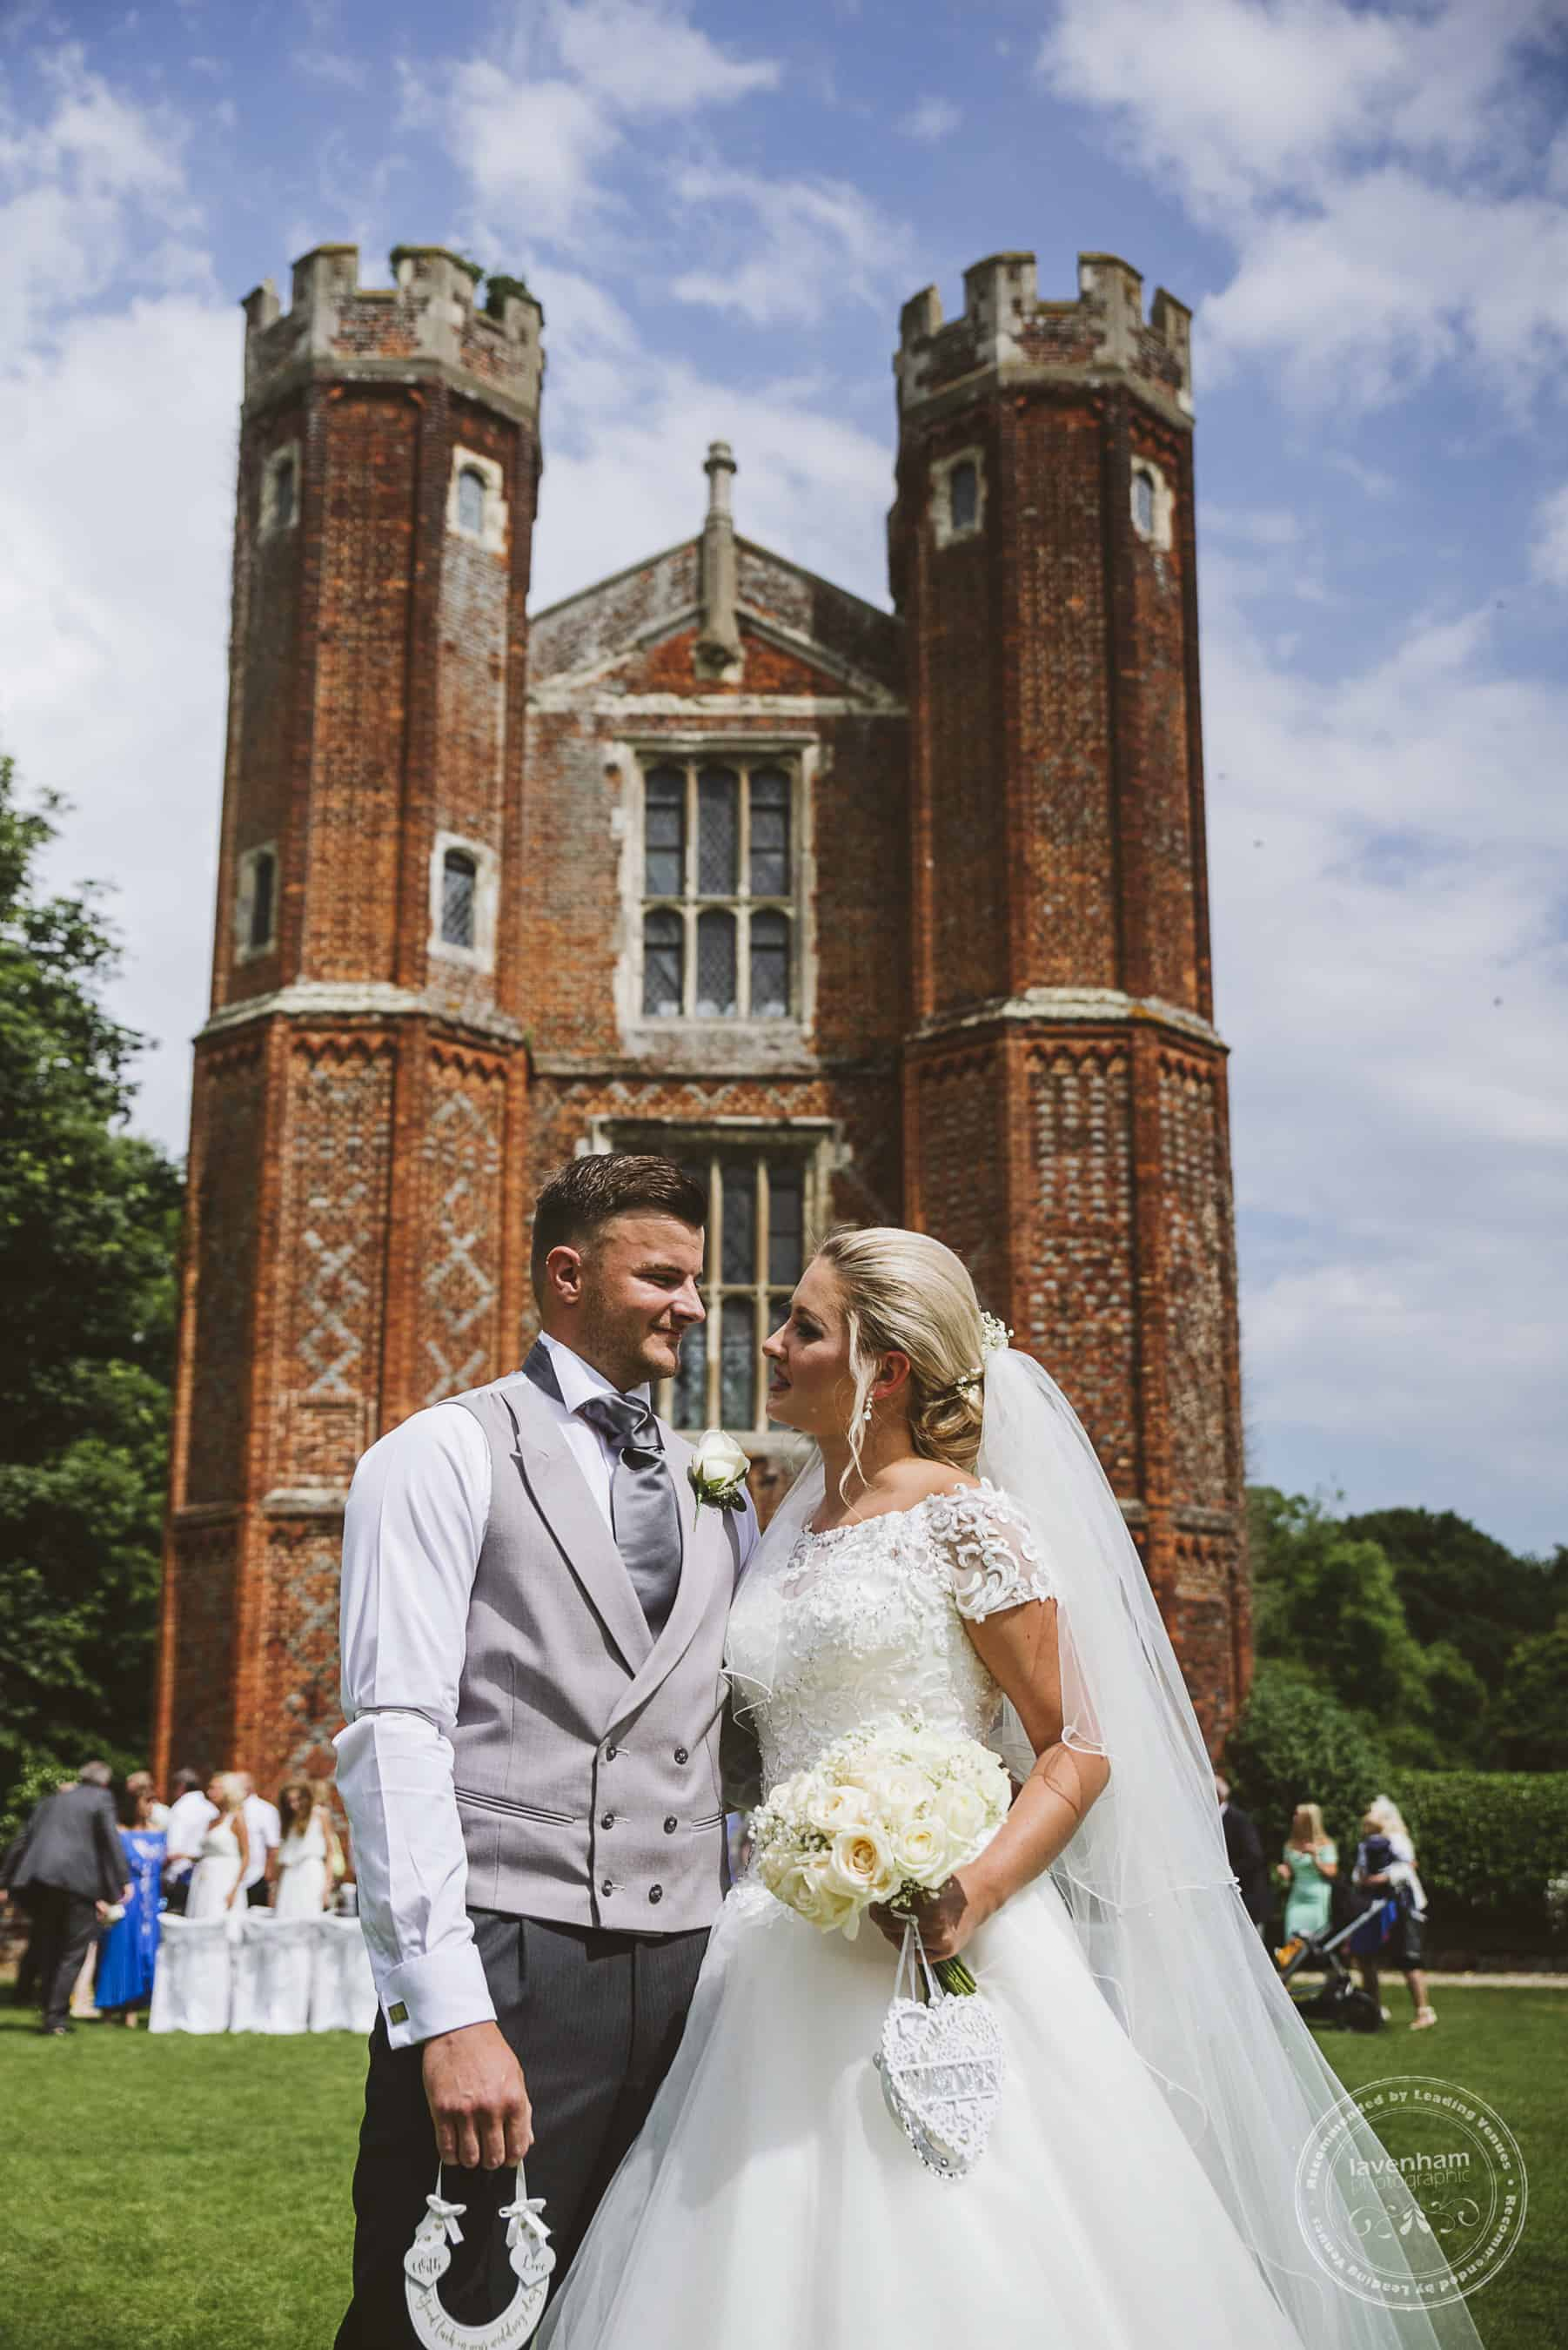 030618 Leez Priory Wedding Photography Lavenham Photographic 049